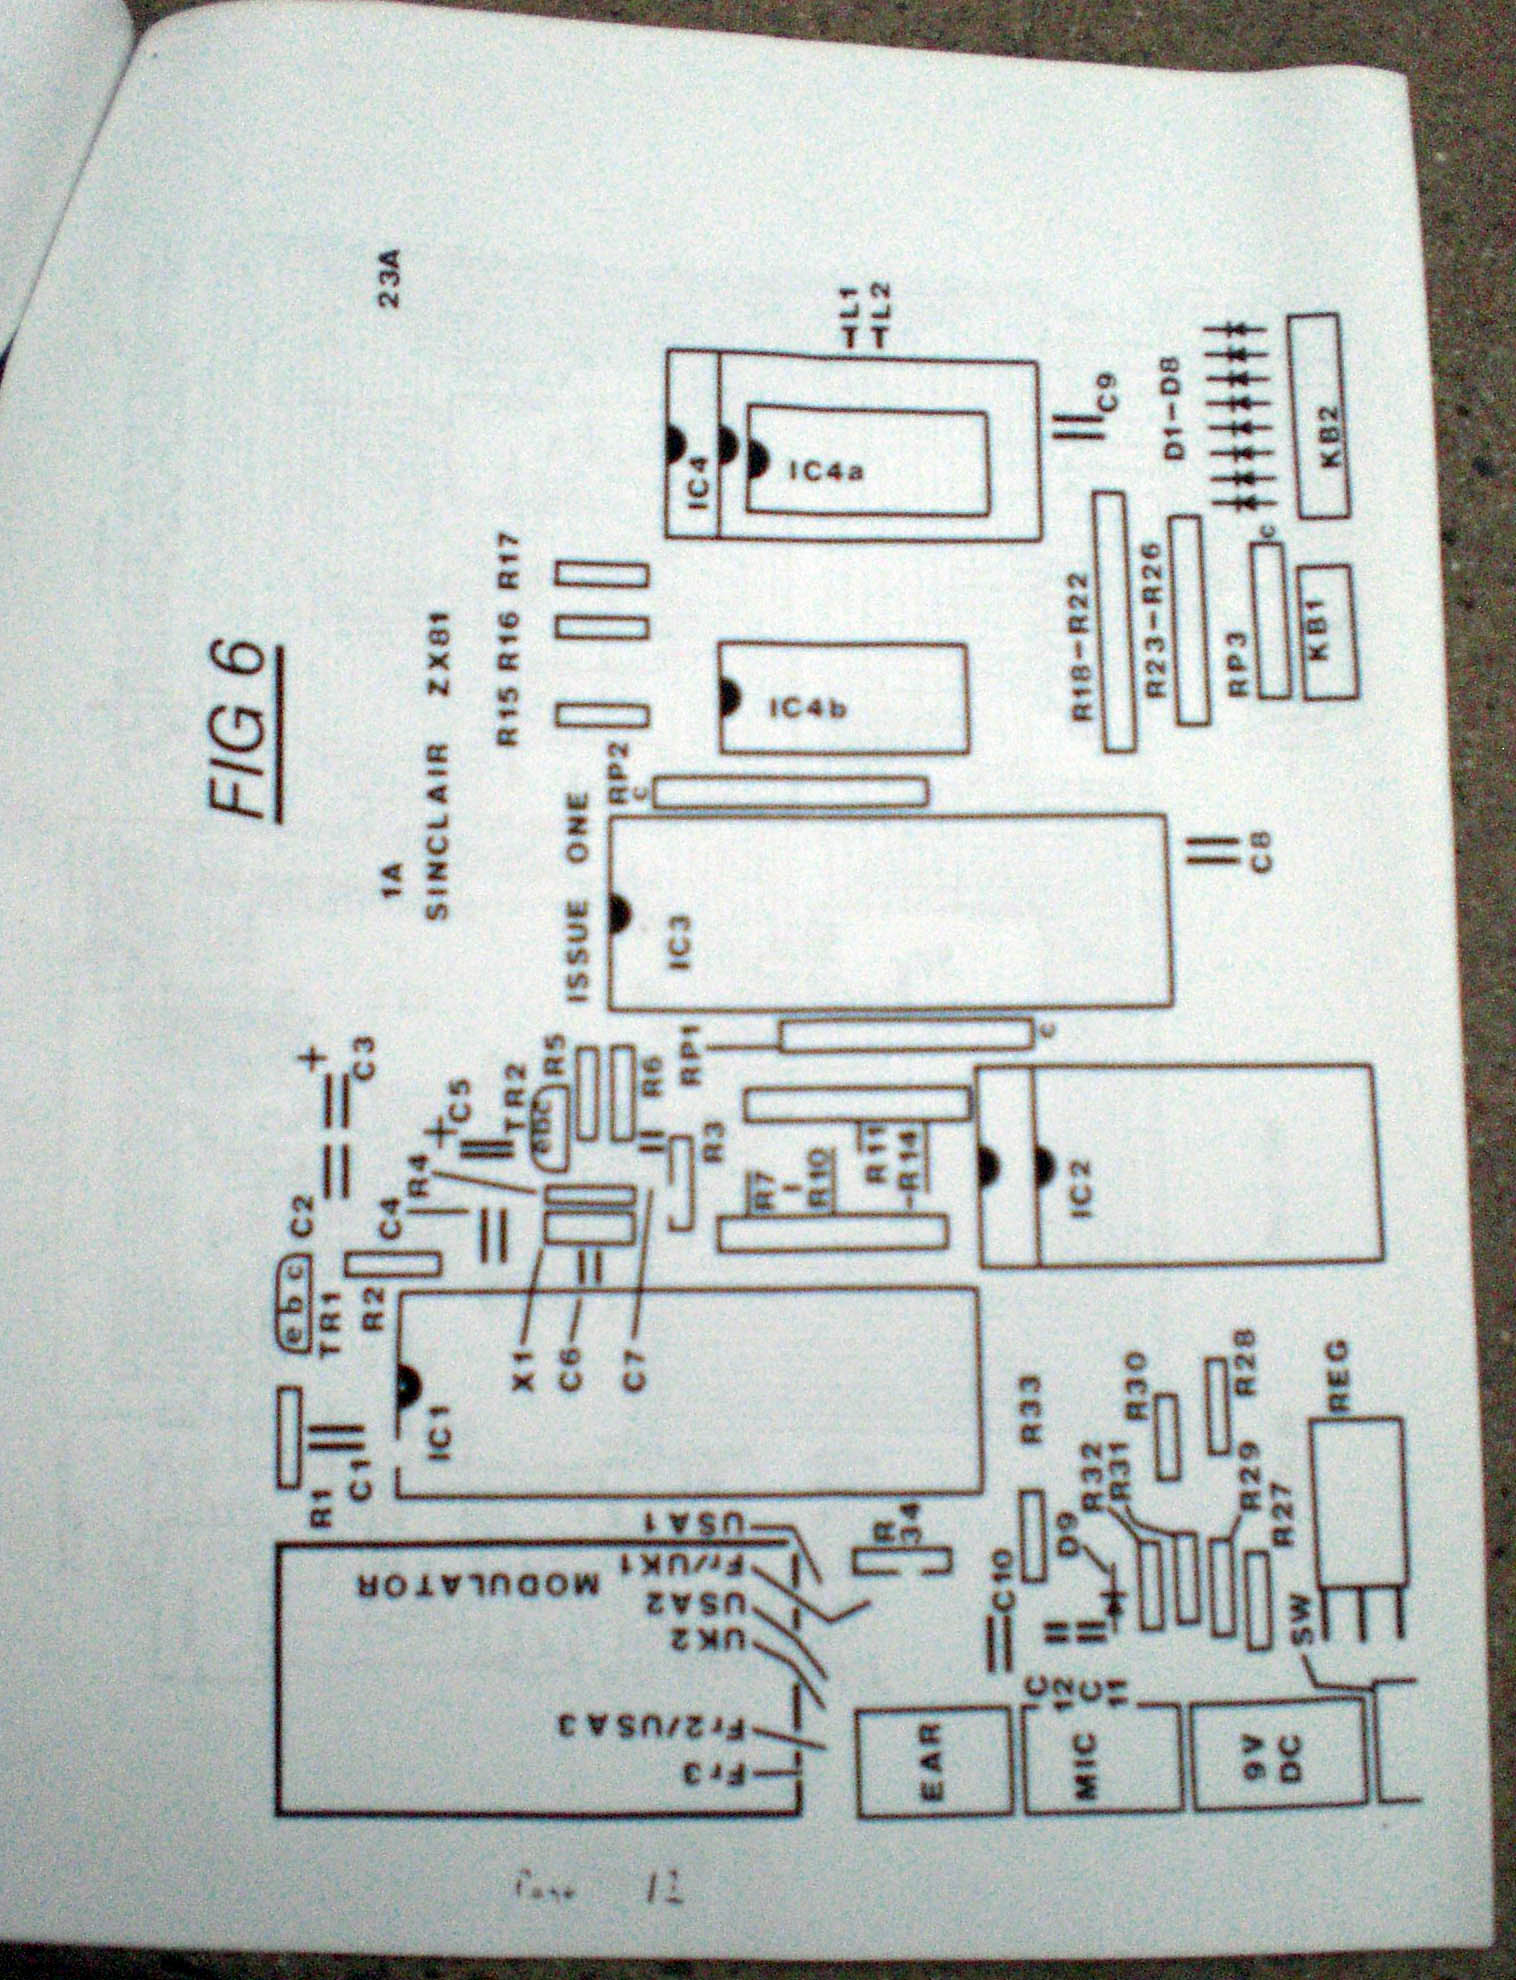 digibarn systems sinclair zx81 home computer  zx81 circuit diagram #50